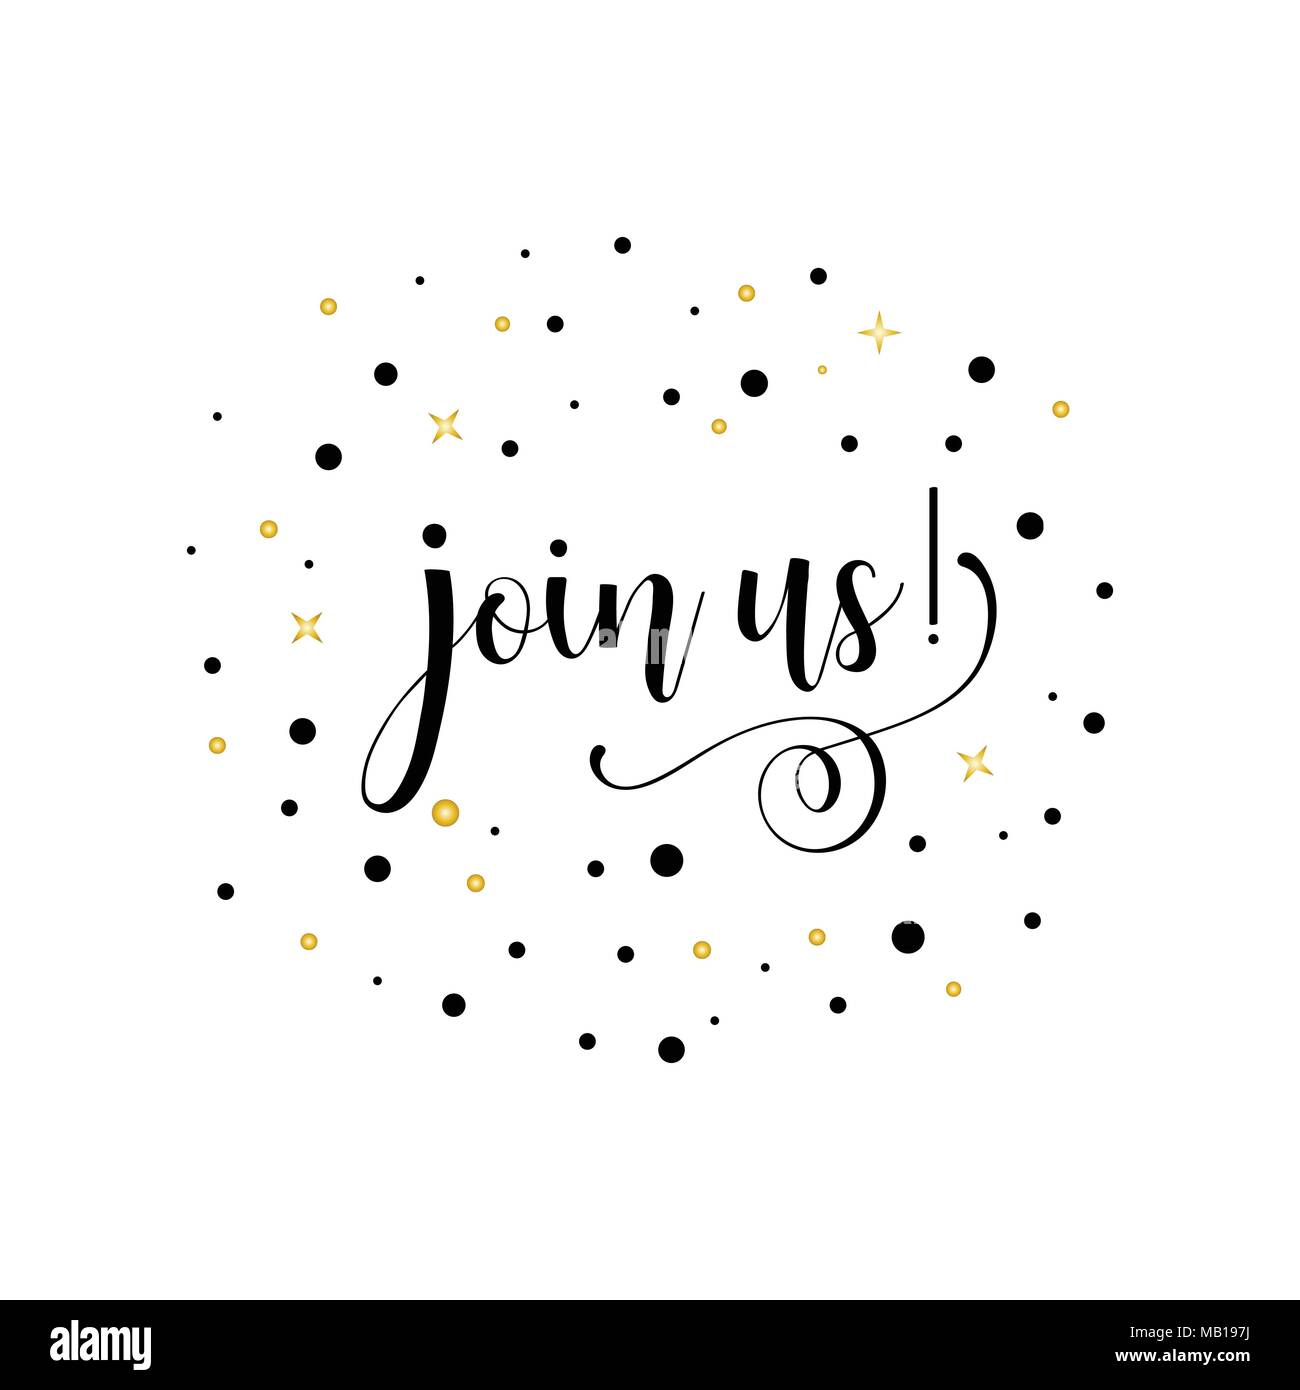 Join us. Lettering. Inspirational and motivational quotes. Can be